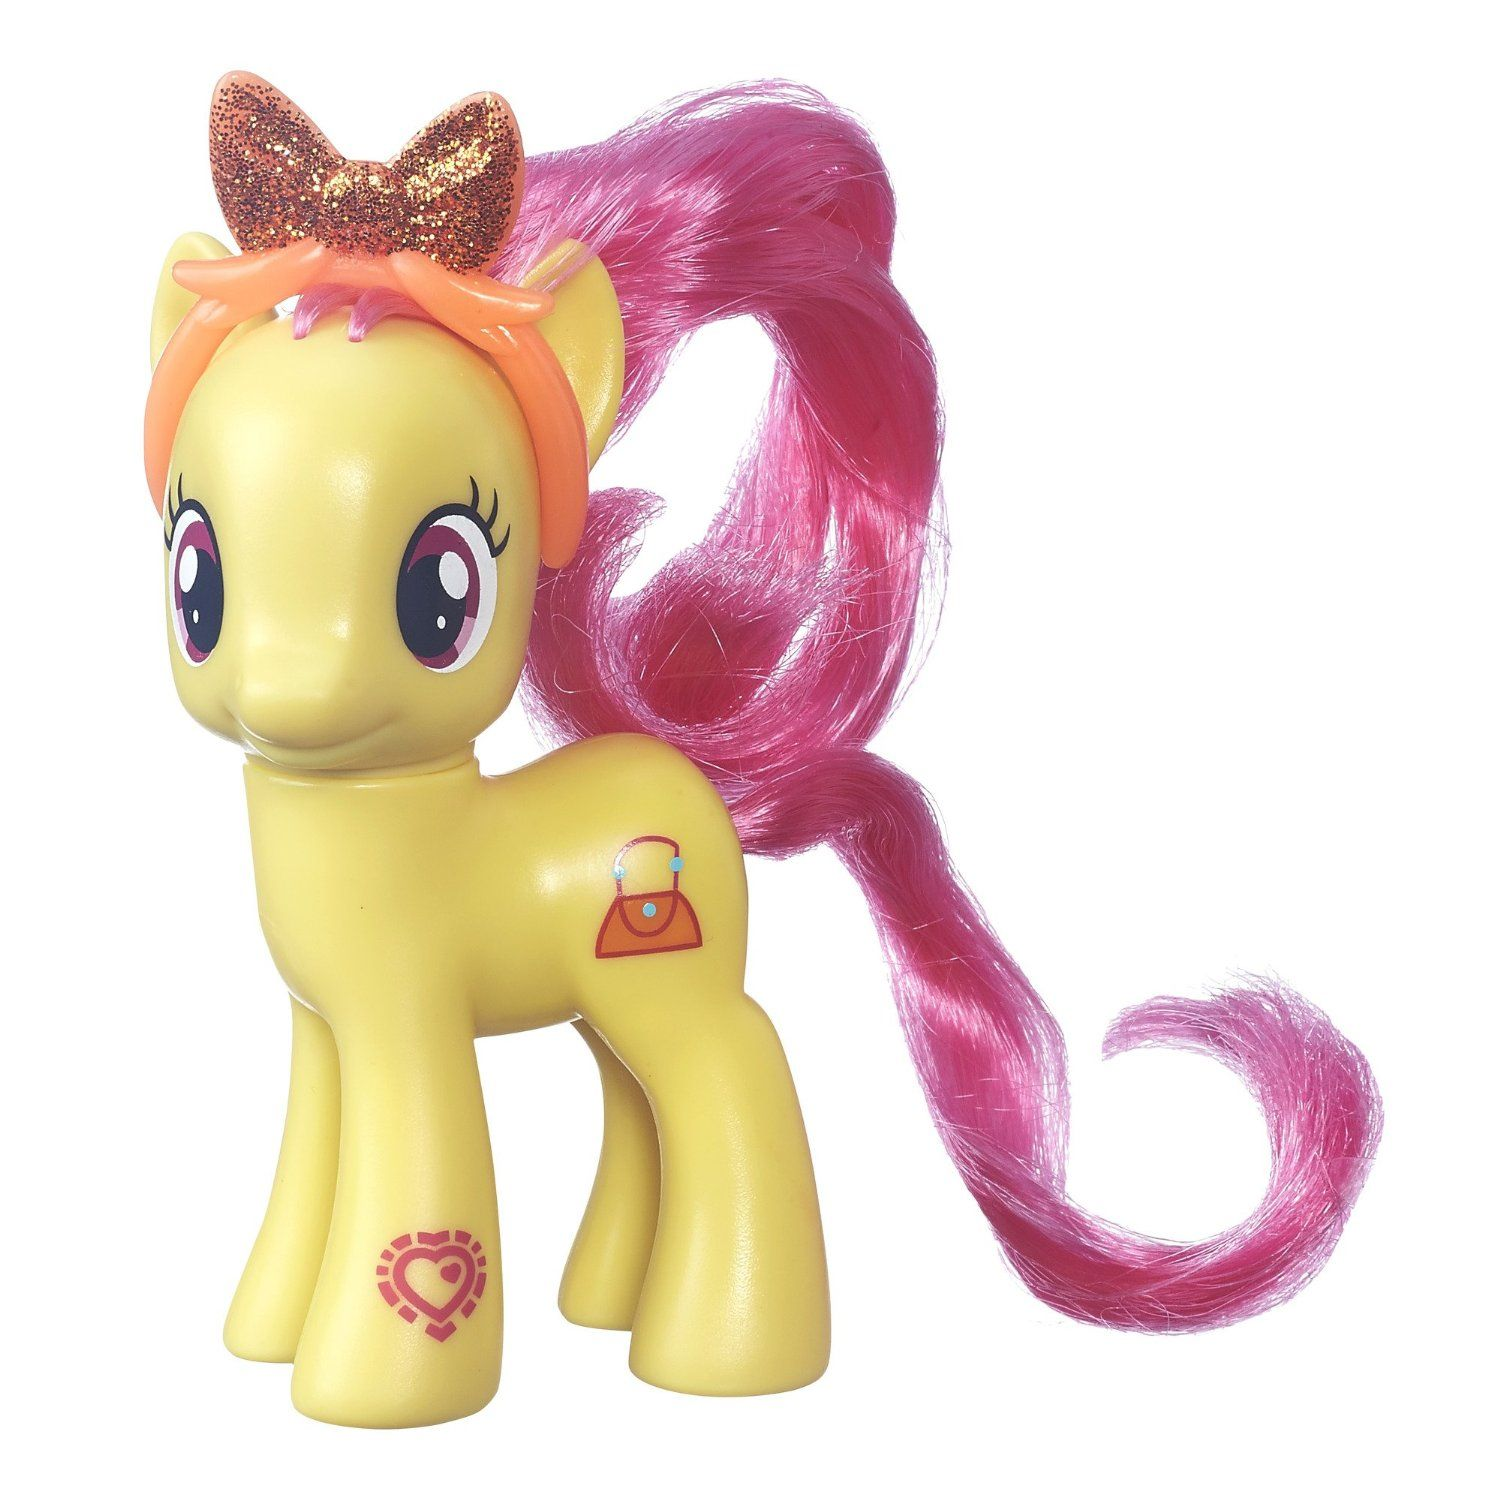 NEW! MY LITTLE PONY explore equestria PURSEY PINK action figure toy MLP G4